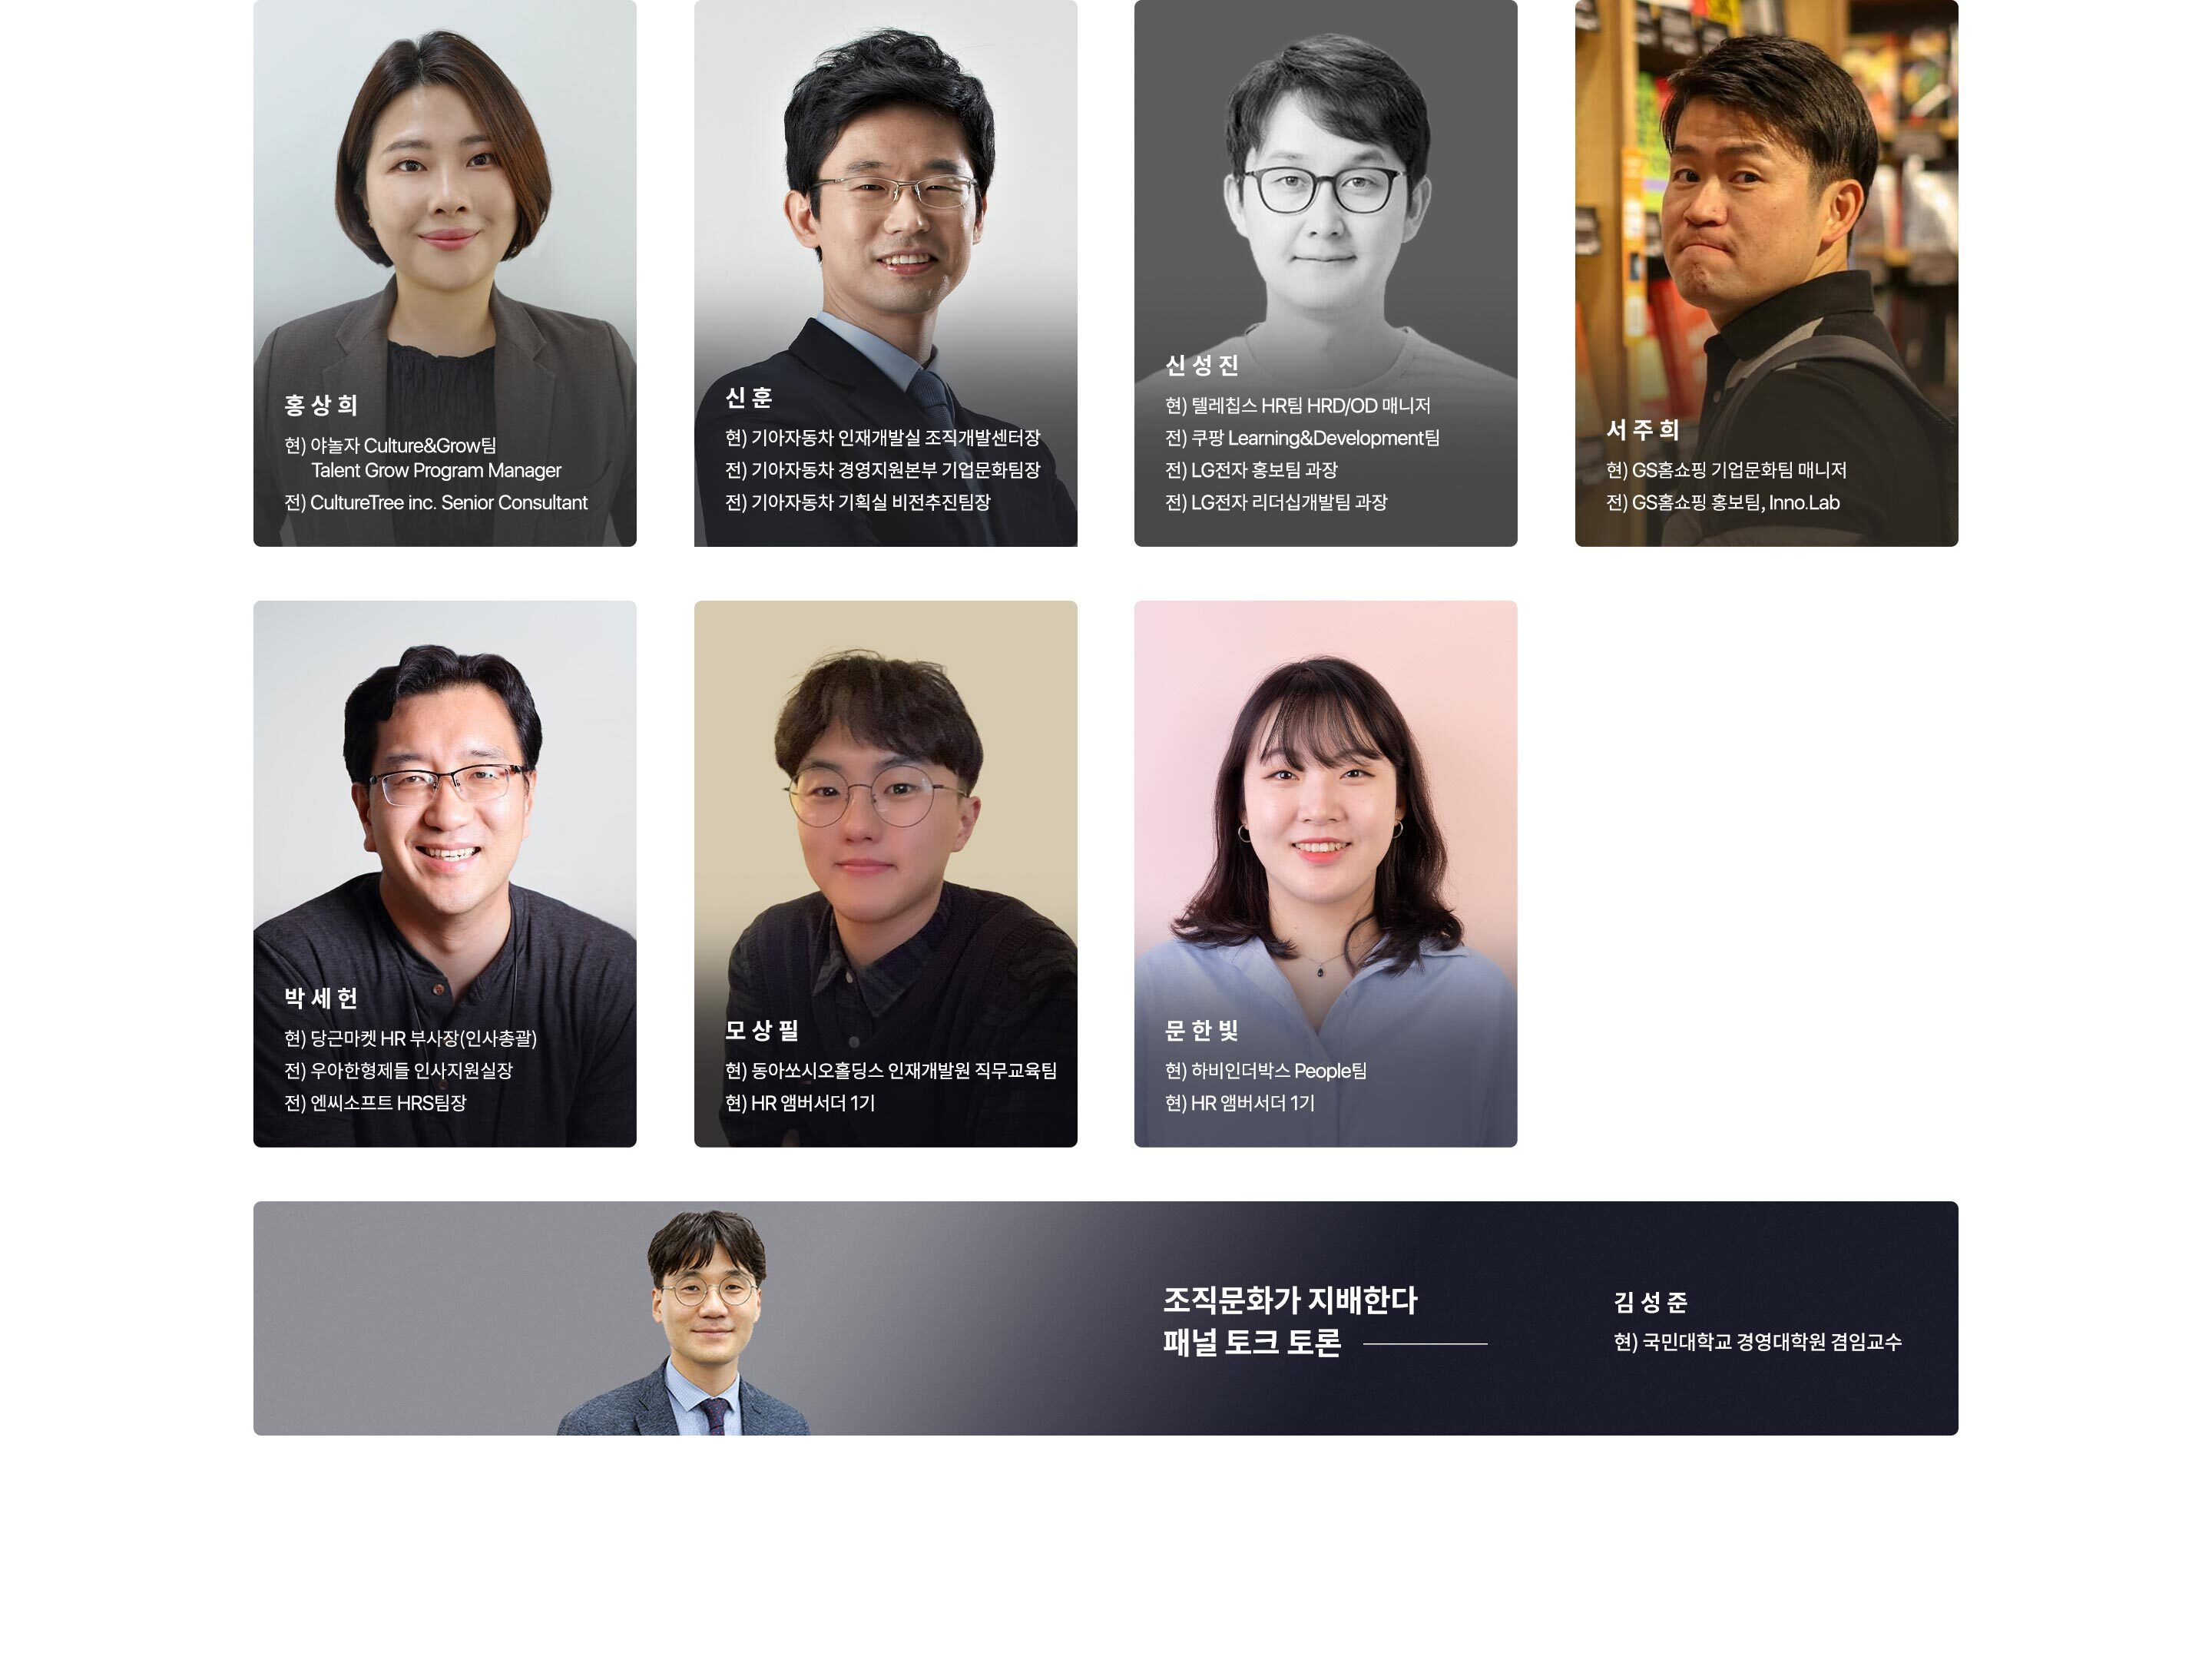 https://static.wanted.co.kr/images/events/975/1798f6bb.jpg